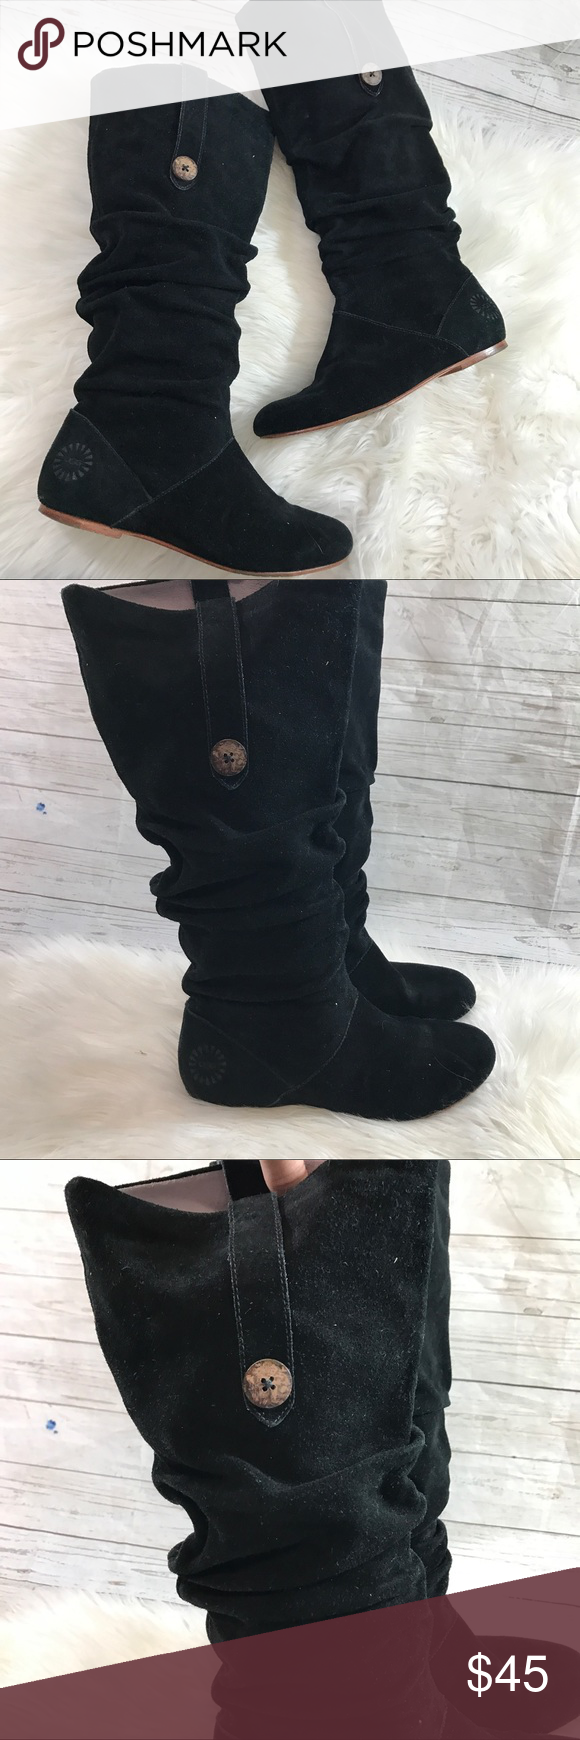 2afb3104c24 Ugg highkoo suede slouch boots black Gently used without flaws other ...